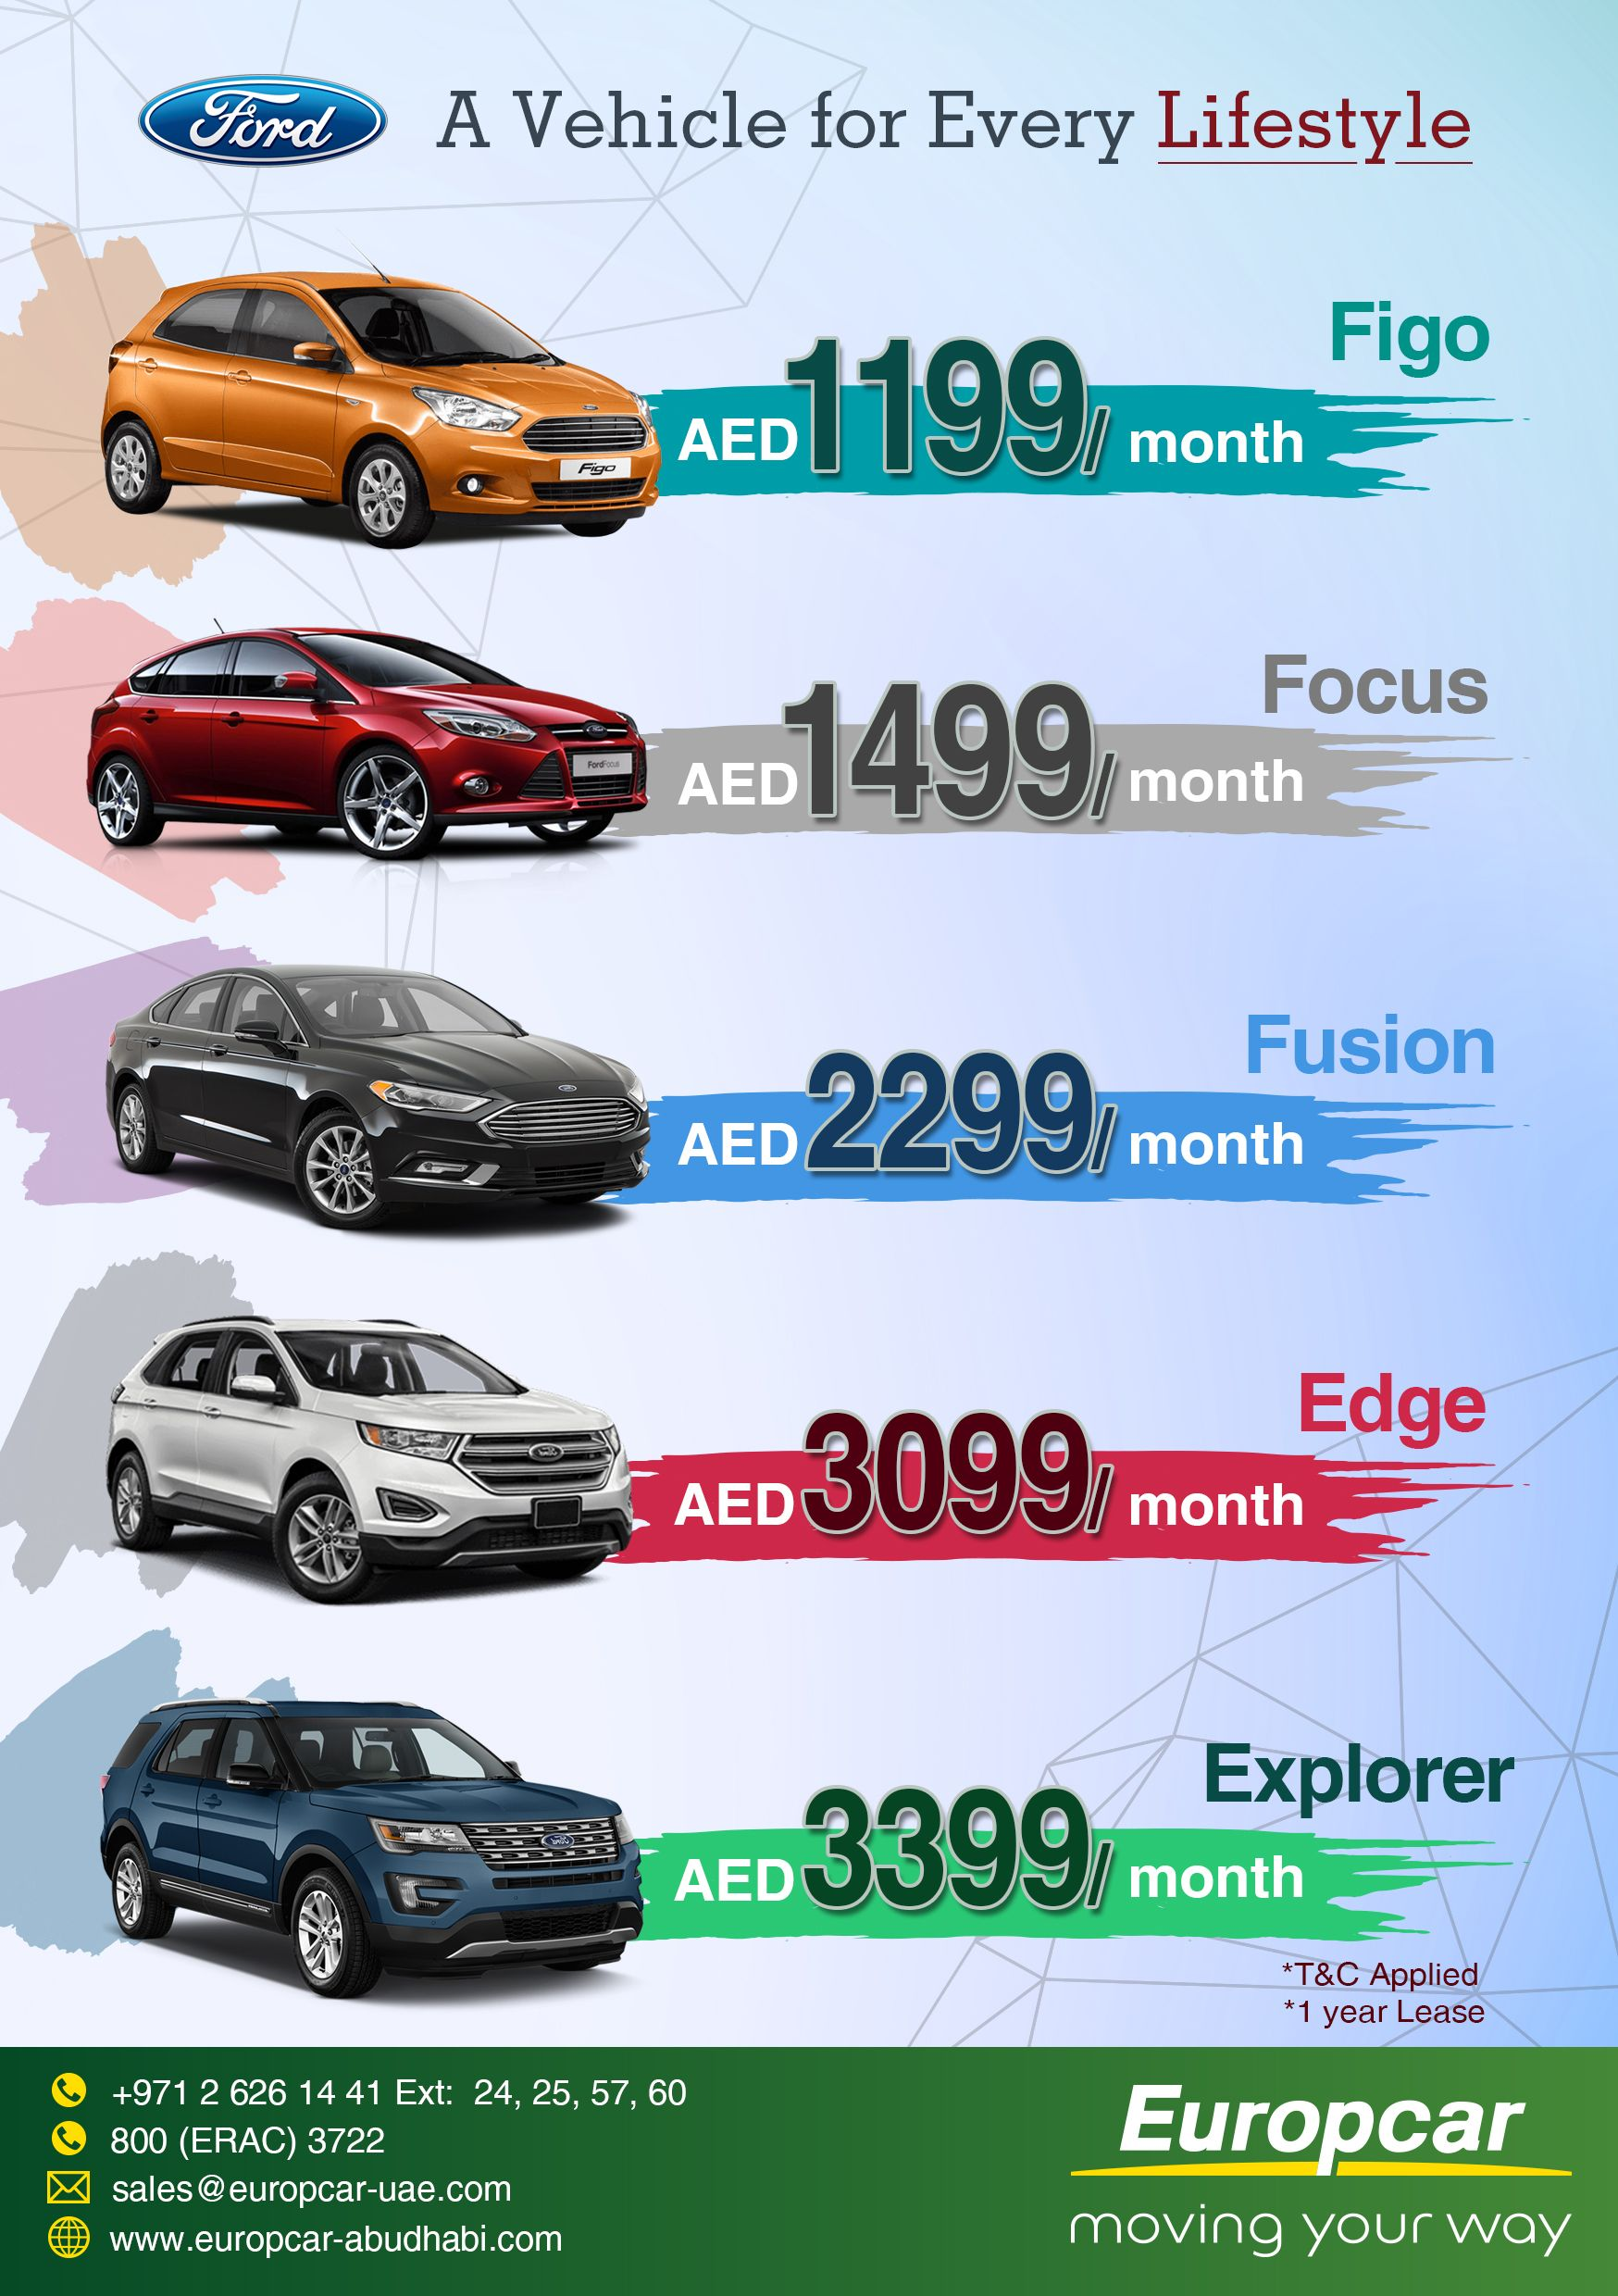 Kickstart Your Summer With Europcar S Exciting Deals Rent A Vehicle That Fits Your Lifestyle With Europcar Abu Dhabi Che How To Apply Rent To Own Homes Lease